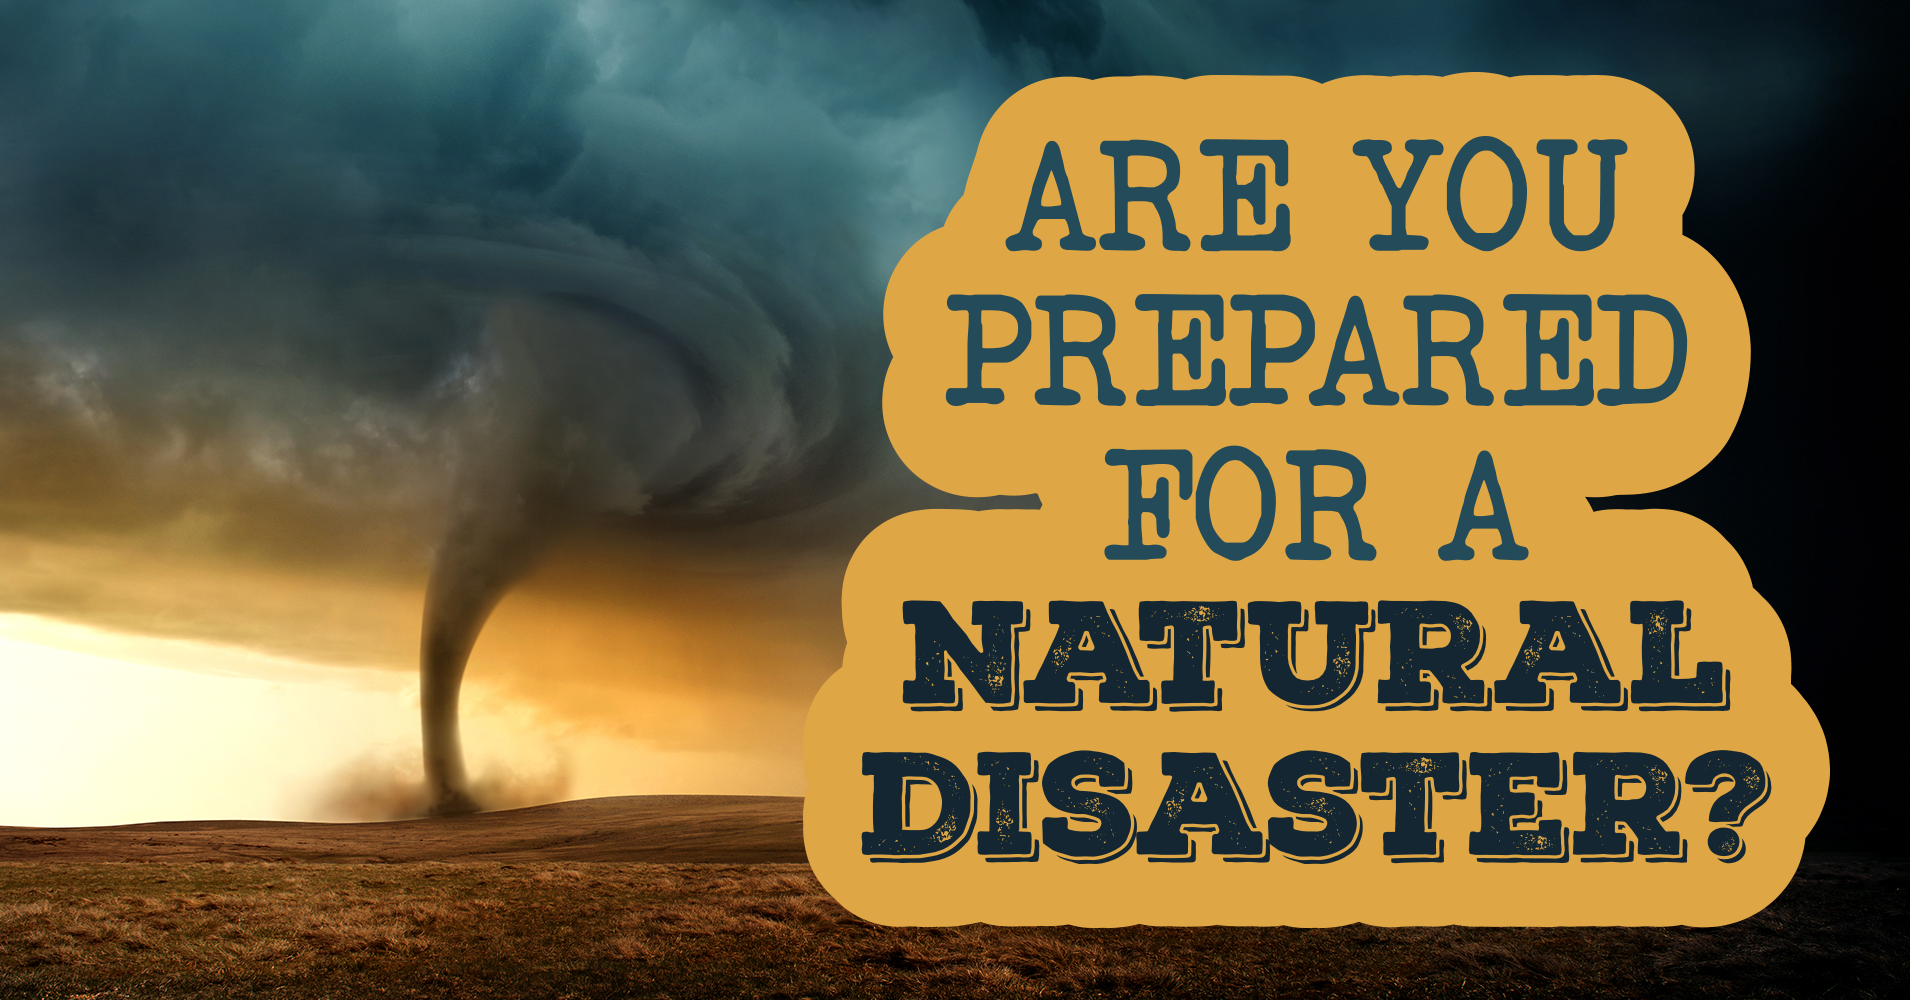 Are You Prepared For A Natural Disaster? - Quiz - Quizony.com